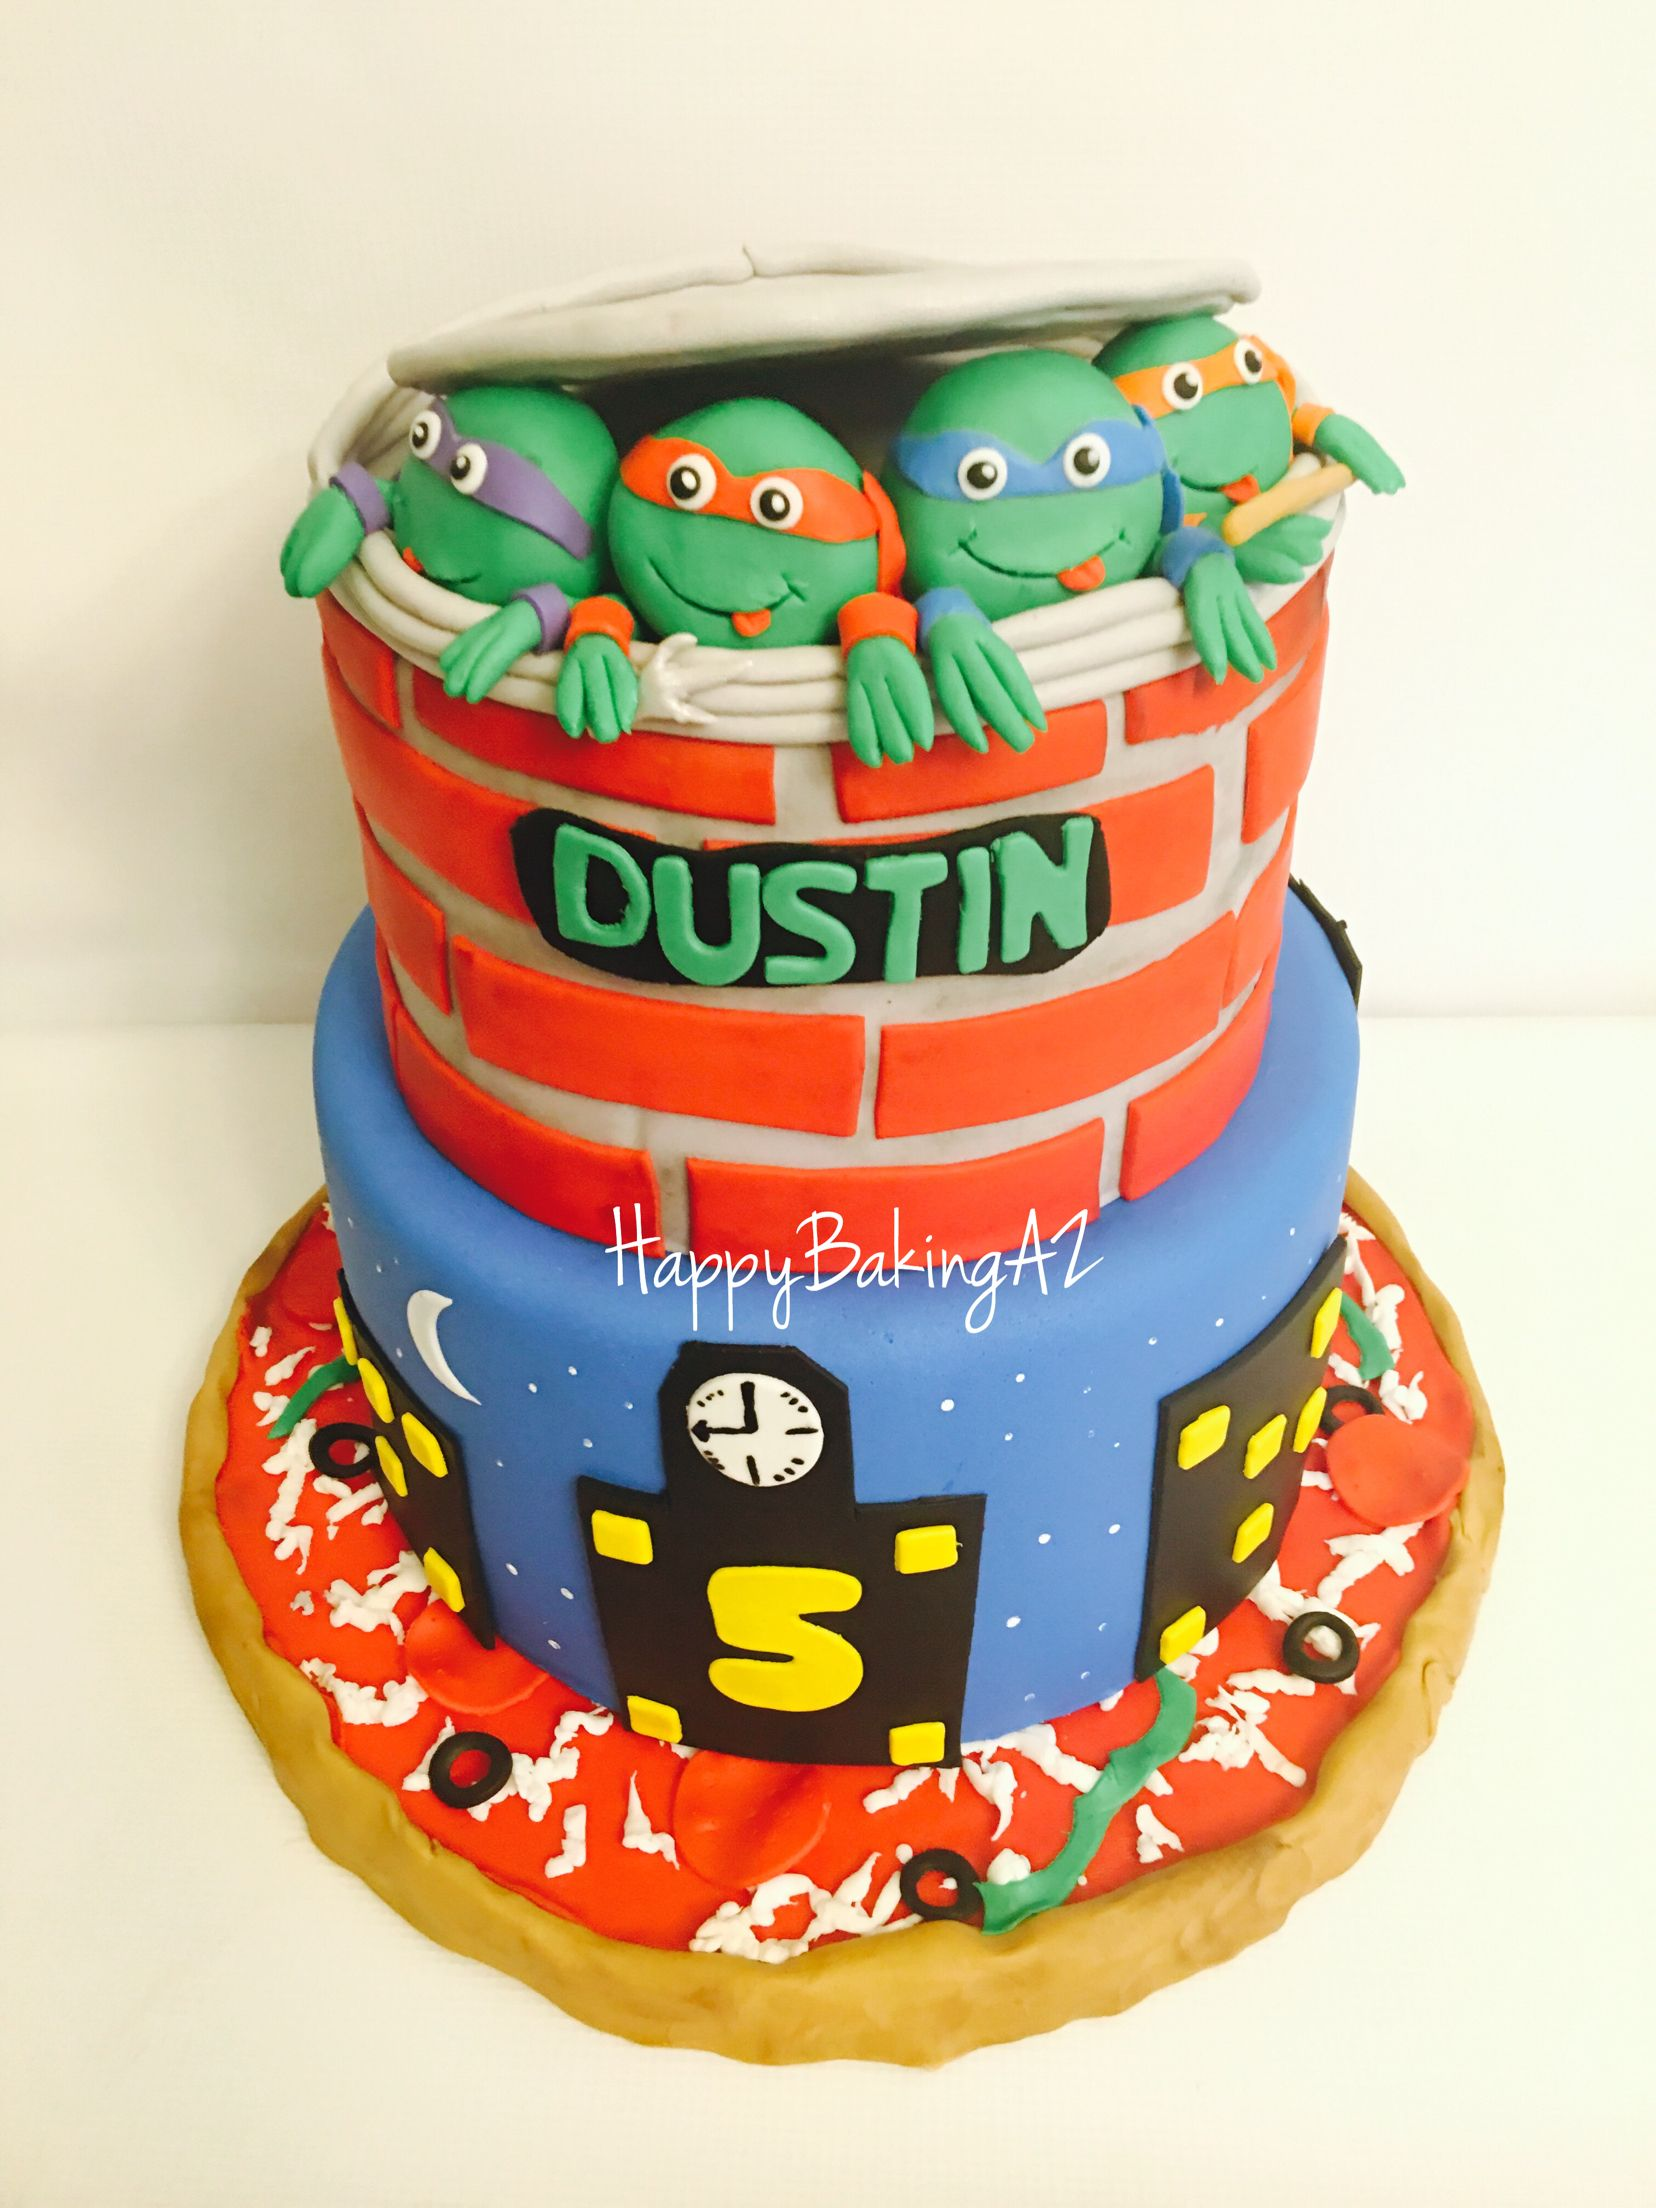 Teenage Mutant Ninja Turtles All Edible Birthday Cakes